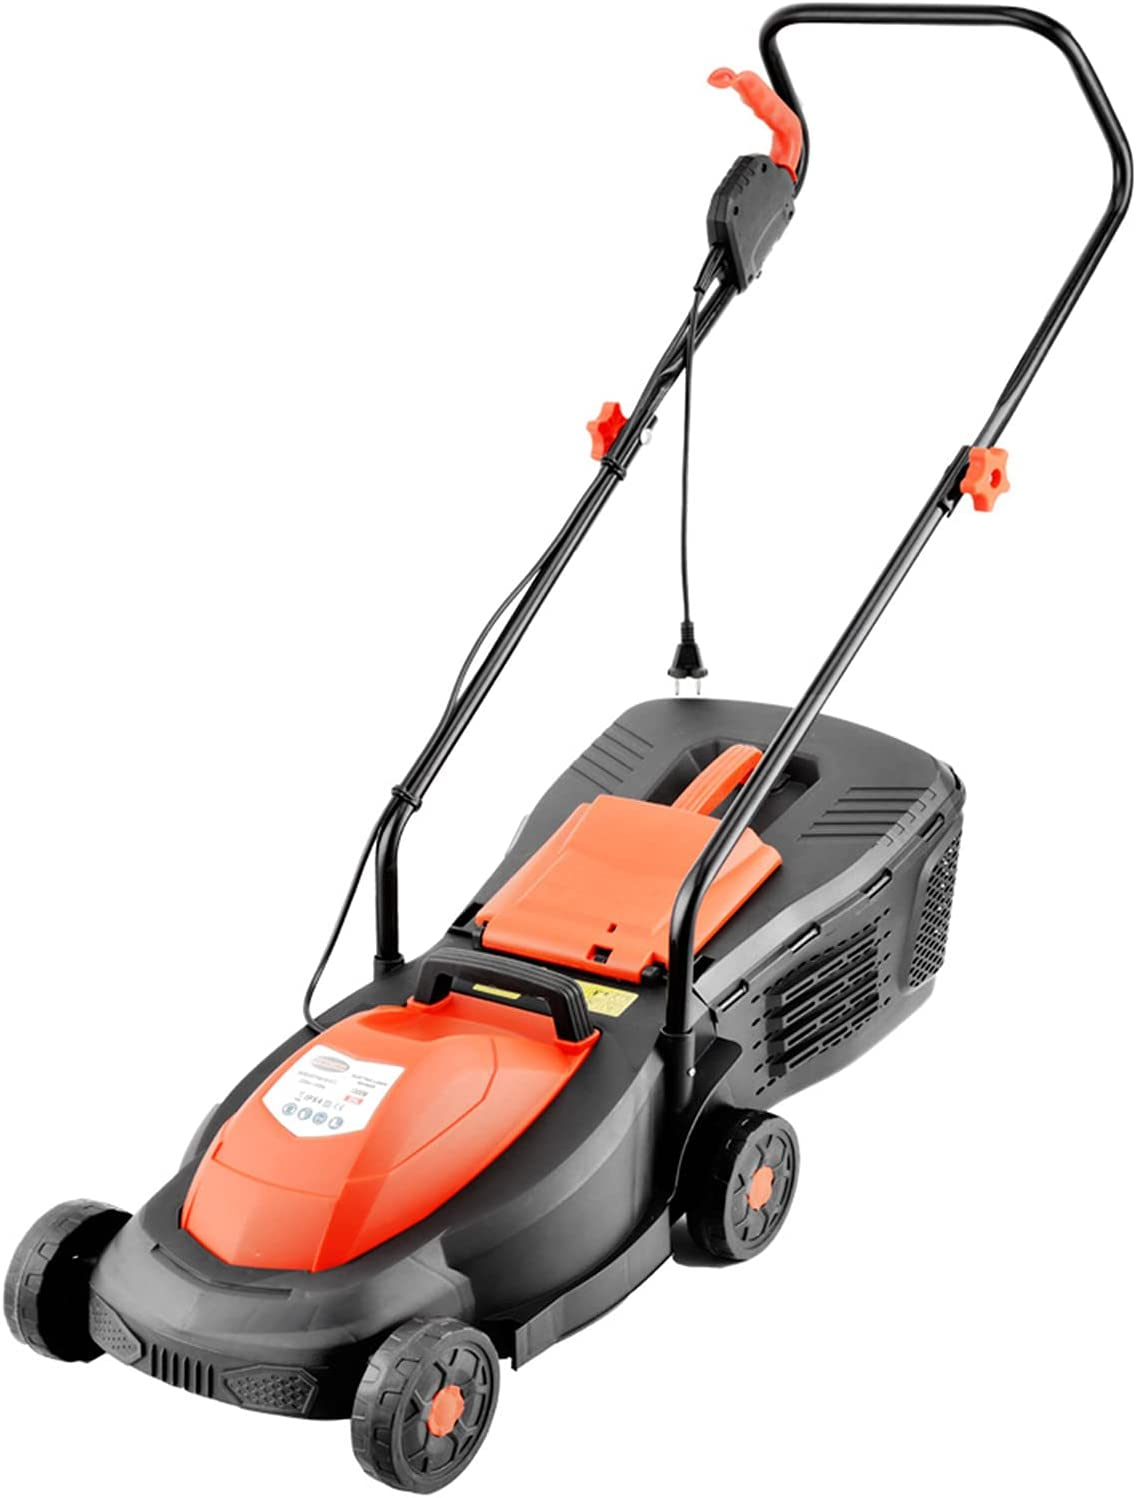 LHMYGHFDP Hand Push Lawn Mower Rotary in Now on sale 100% quality warranty 220V Plug Electric